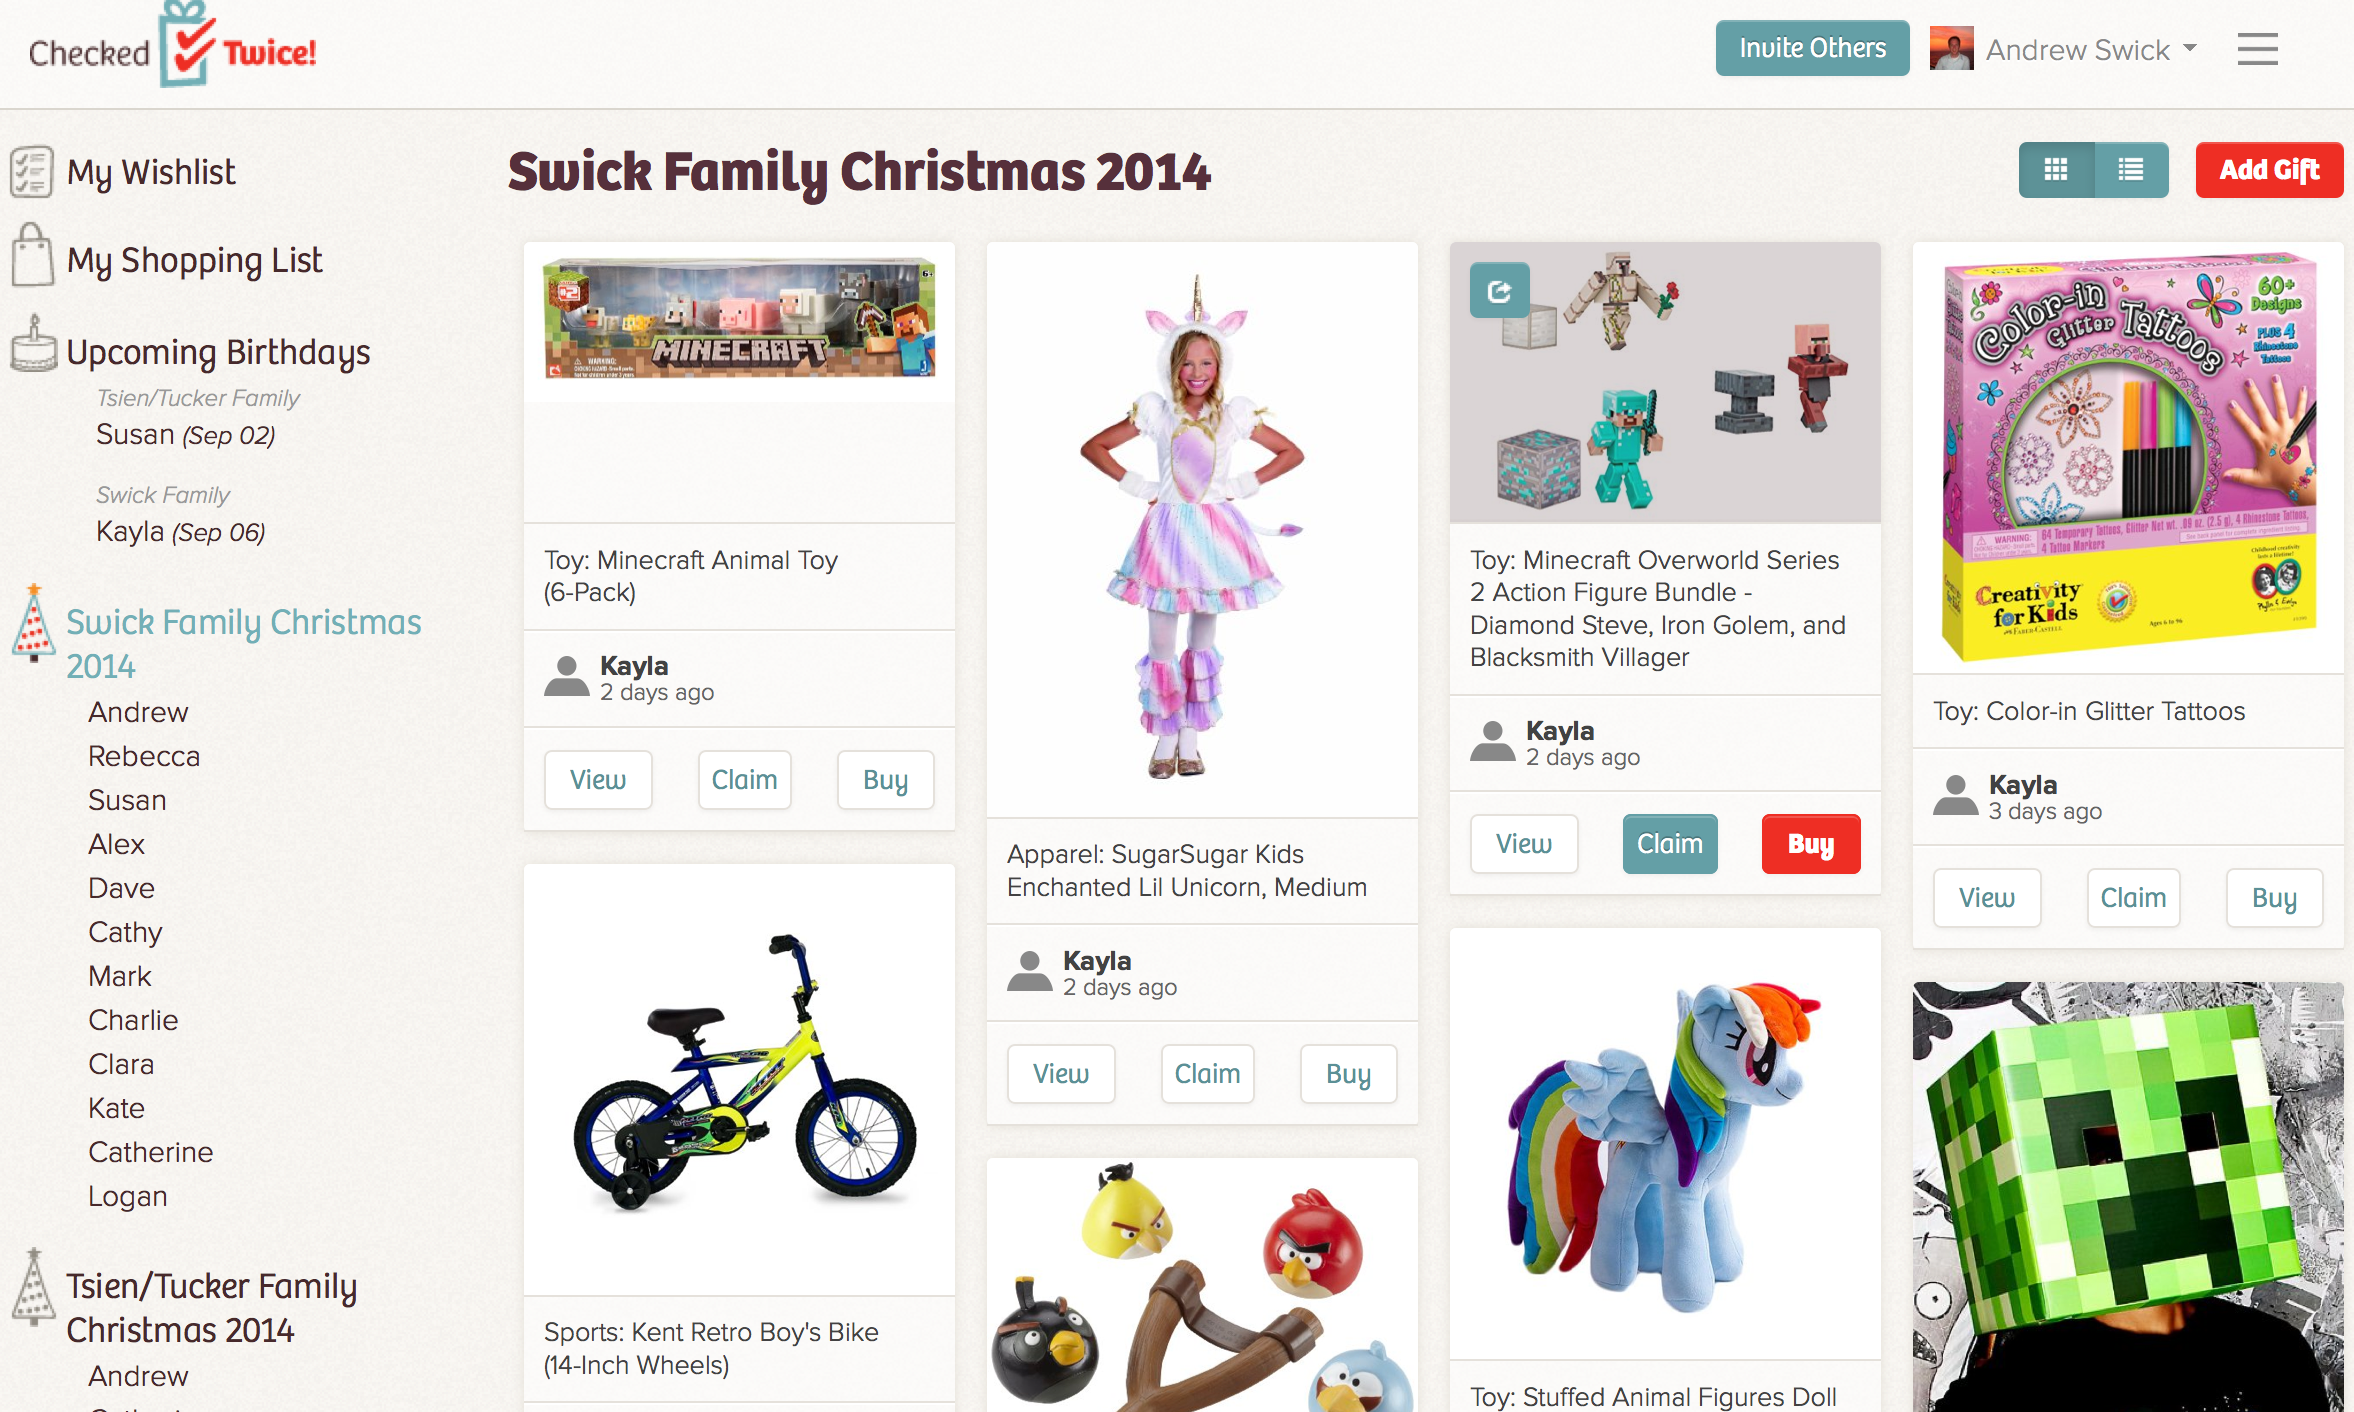 CheckedTwice Family Gift Registry|Christmas Wish List|Birthday Wish List